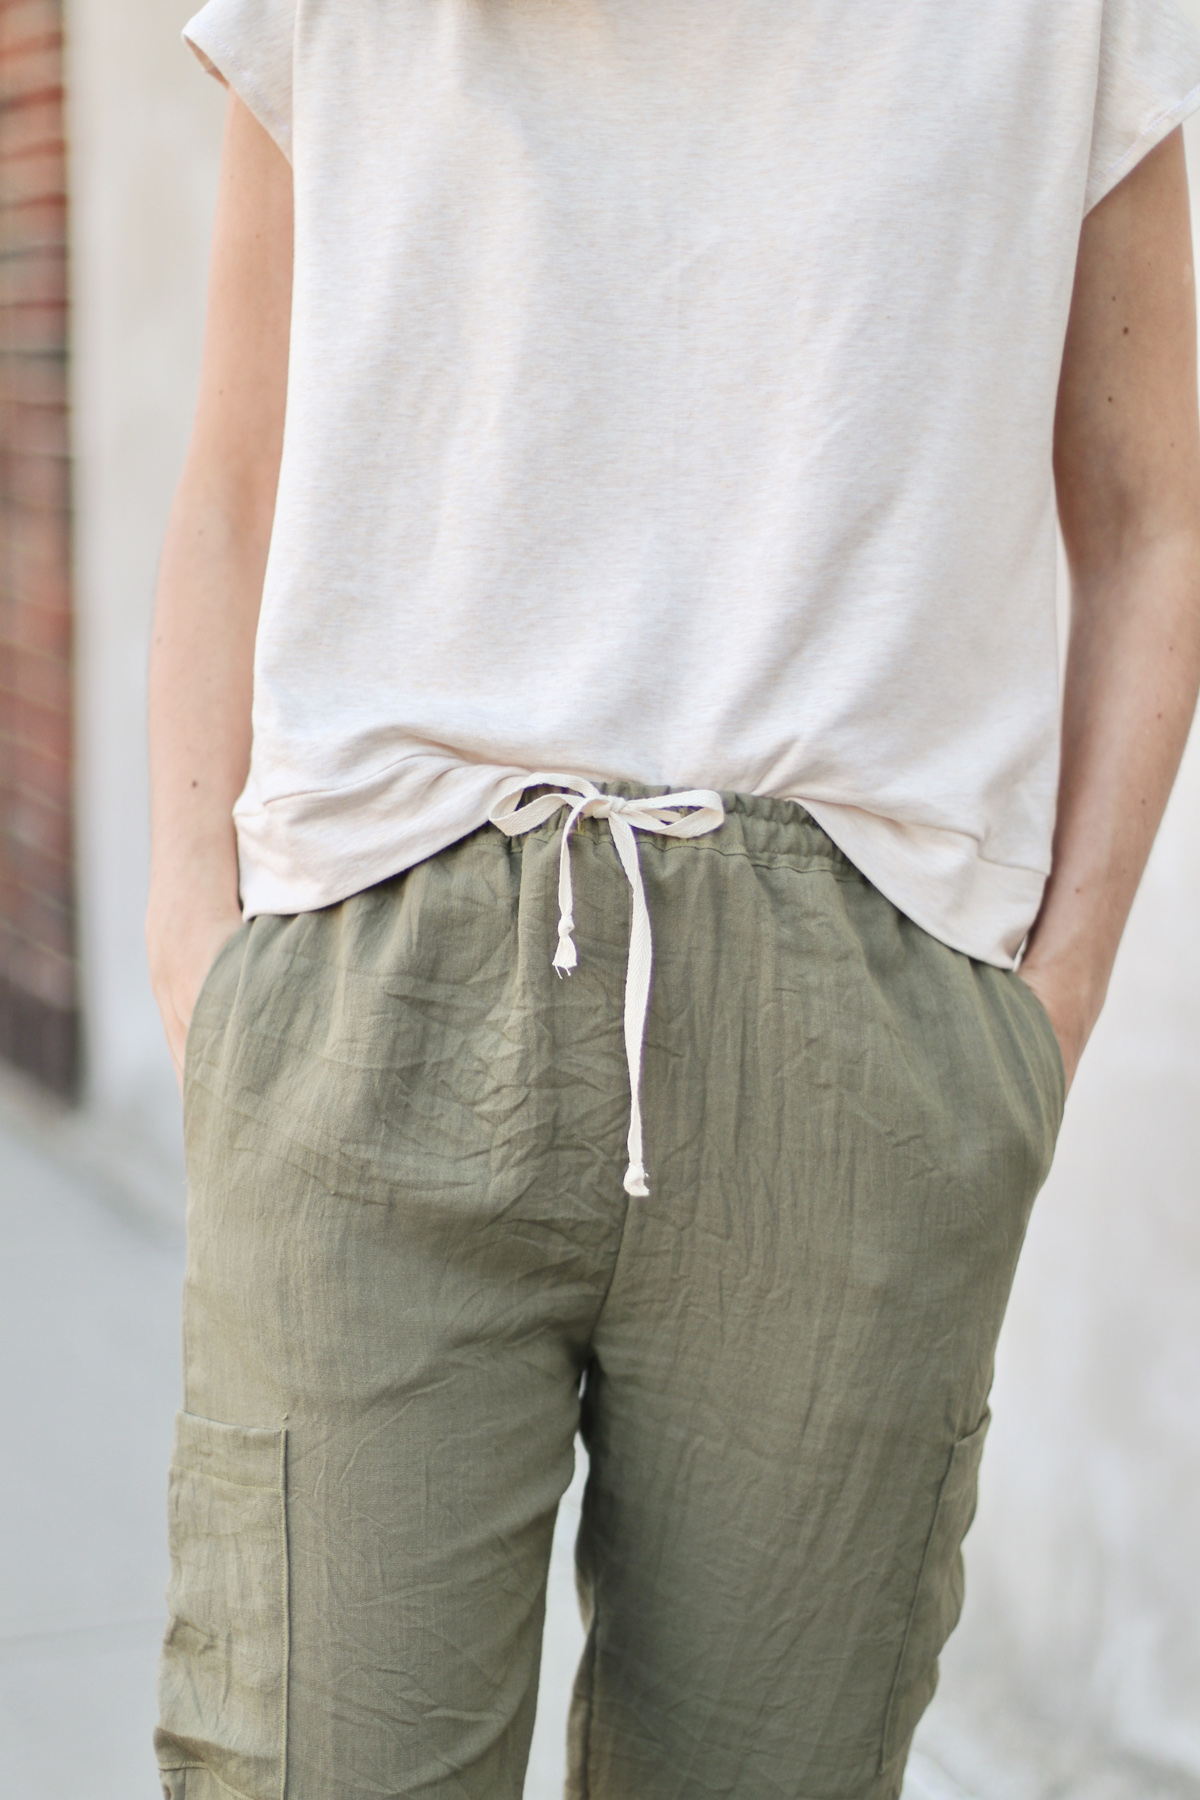 Opal Pants And Shorts - Drawstring Hack - Finished Result